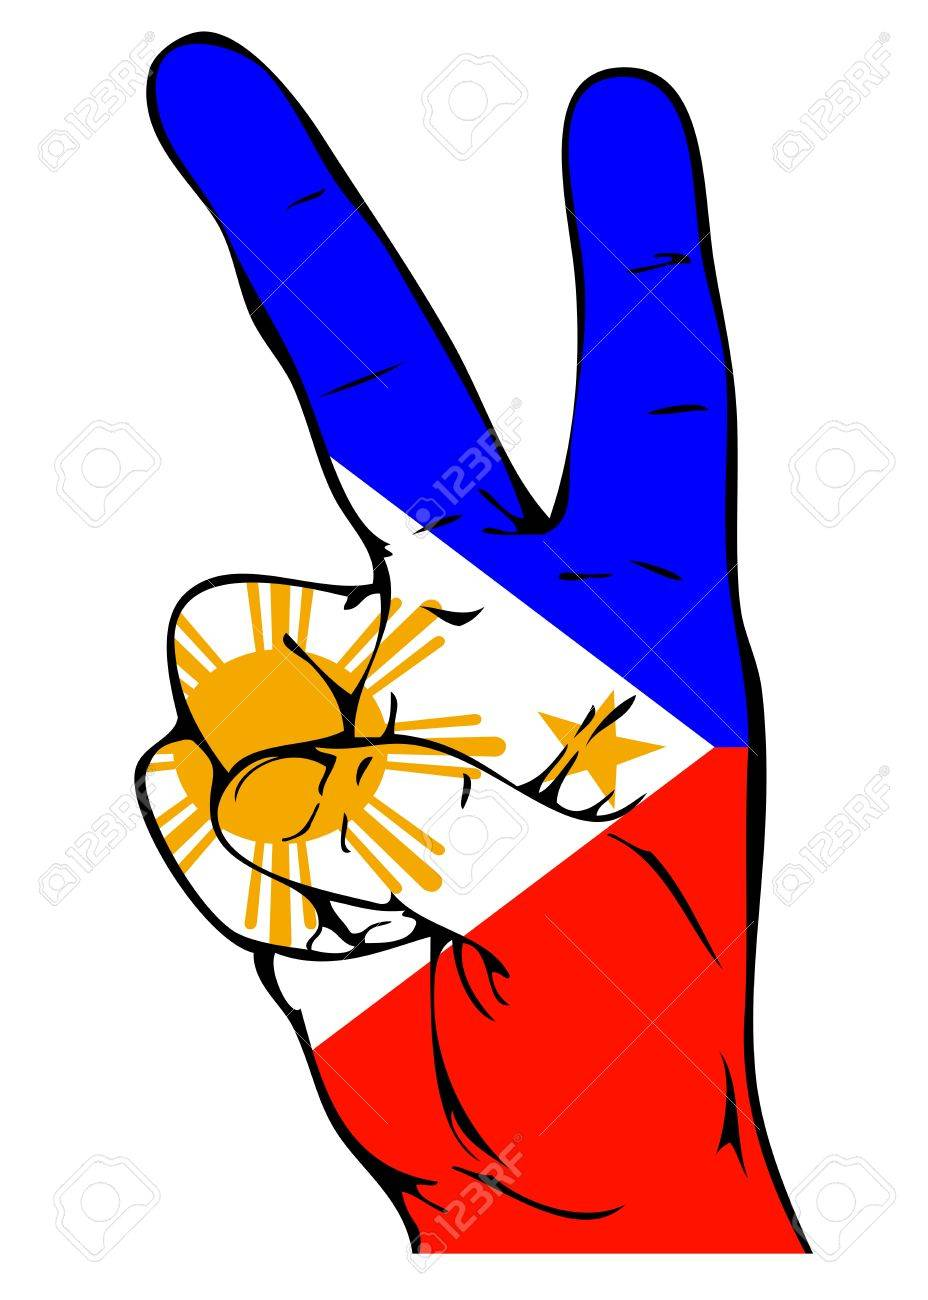 Peace sign of the philippine flag royalty free cliparts vectors peace sign of the philippine flag stock vector 22121644 biocorpaavc Choice Image